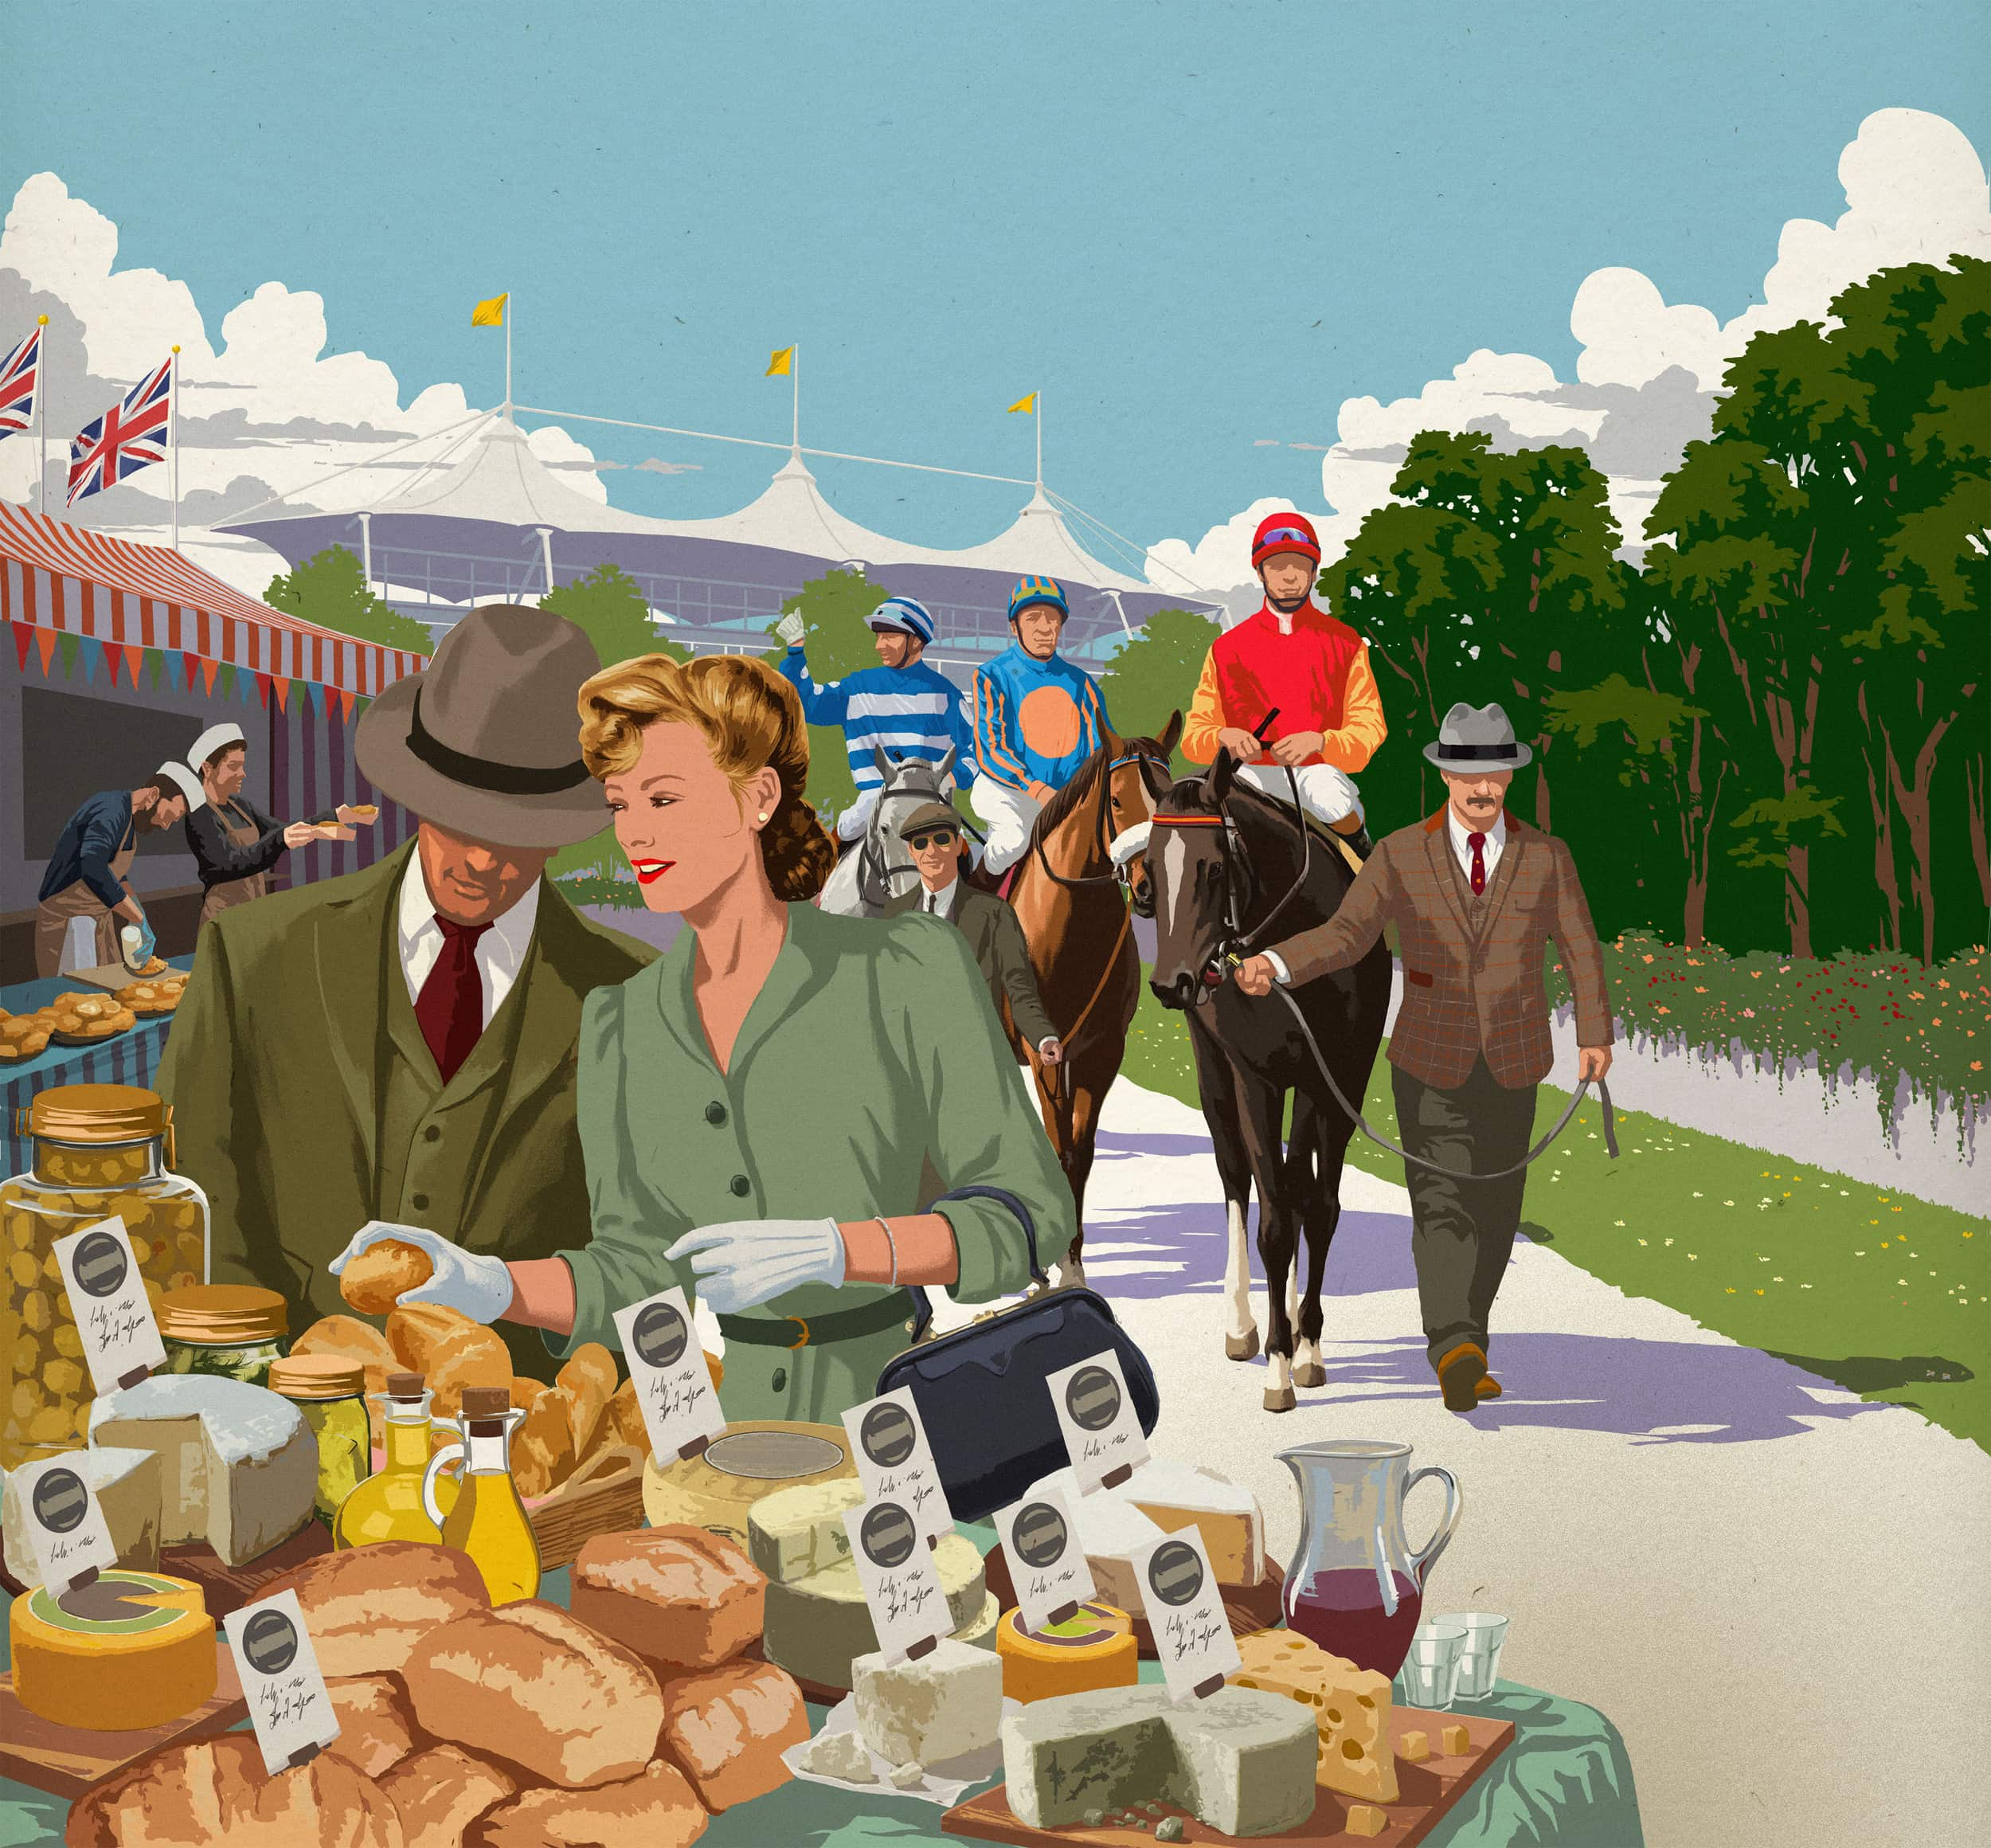 Goodwood Food Fest Artwork 2018